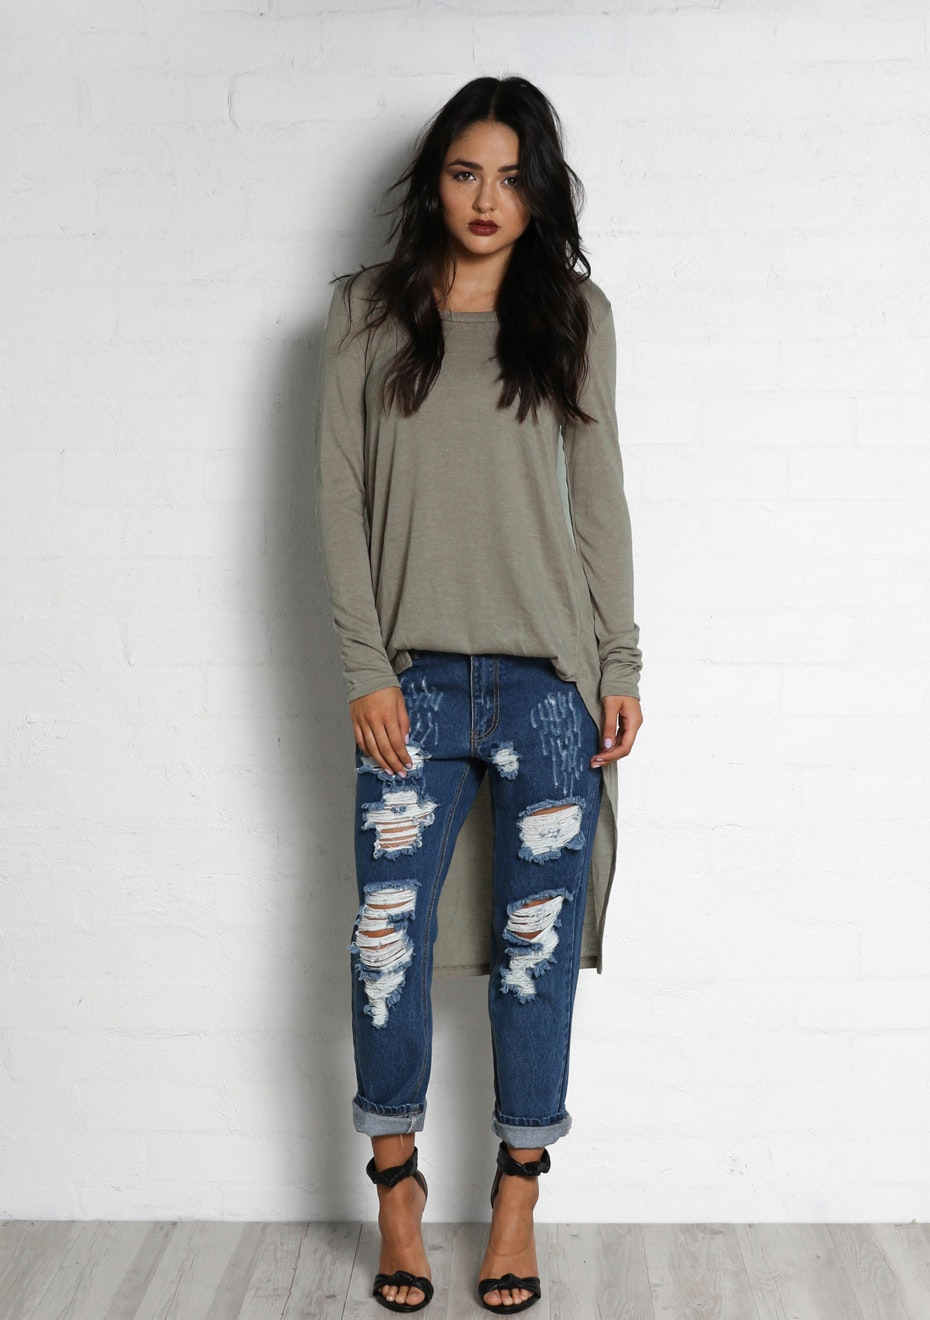 Madison - BREAKDOWN BOYFRIEND JEANS - DARK DENIM